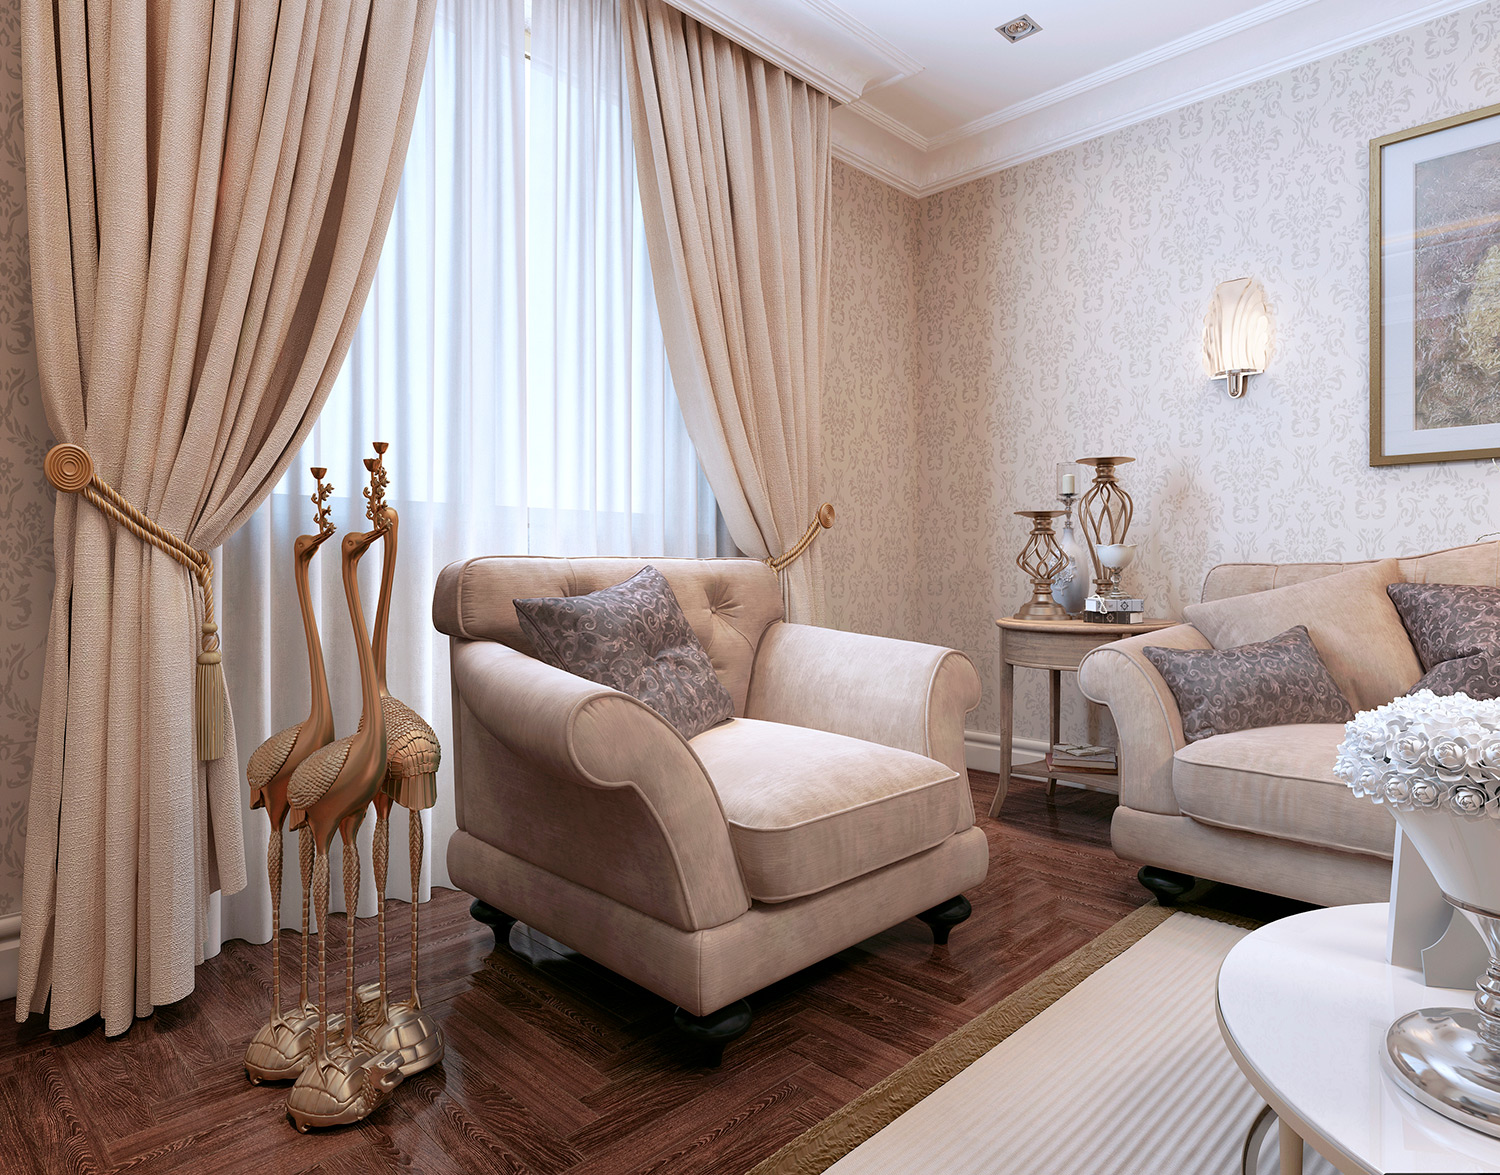 Living-room-curtains-interior-designer-custom-window-treatments-interior-eloquence-haymarket-virginia-2.jpg